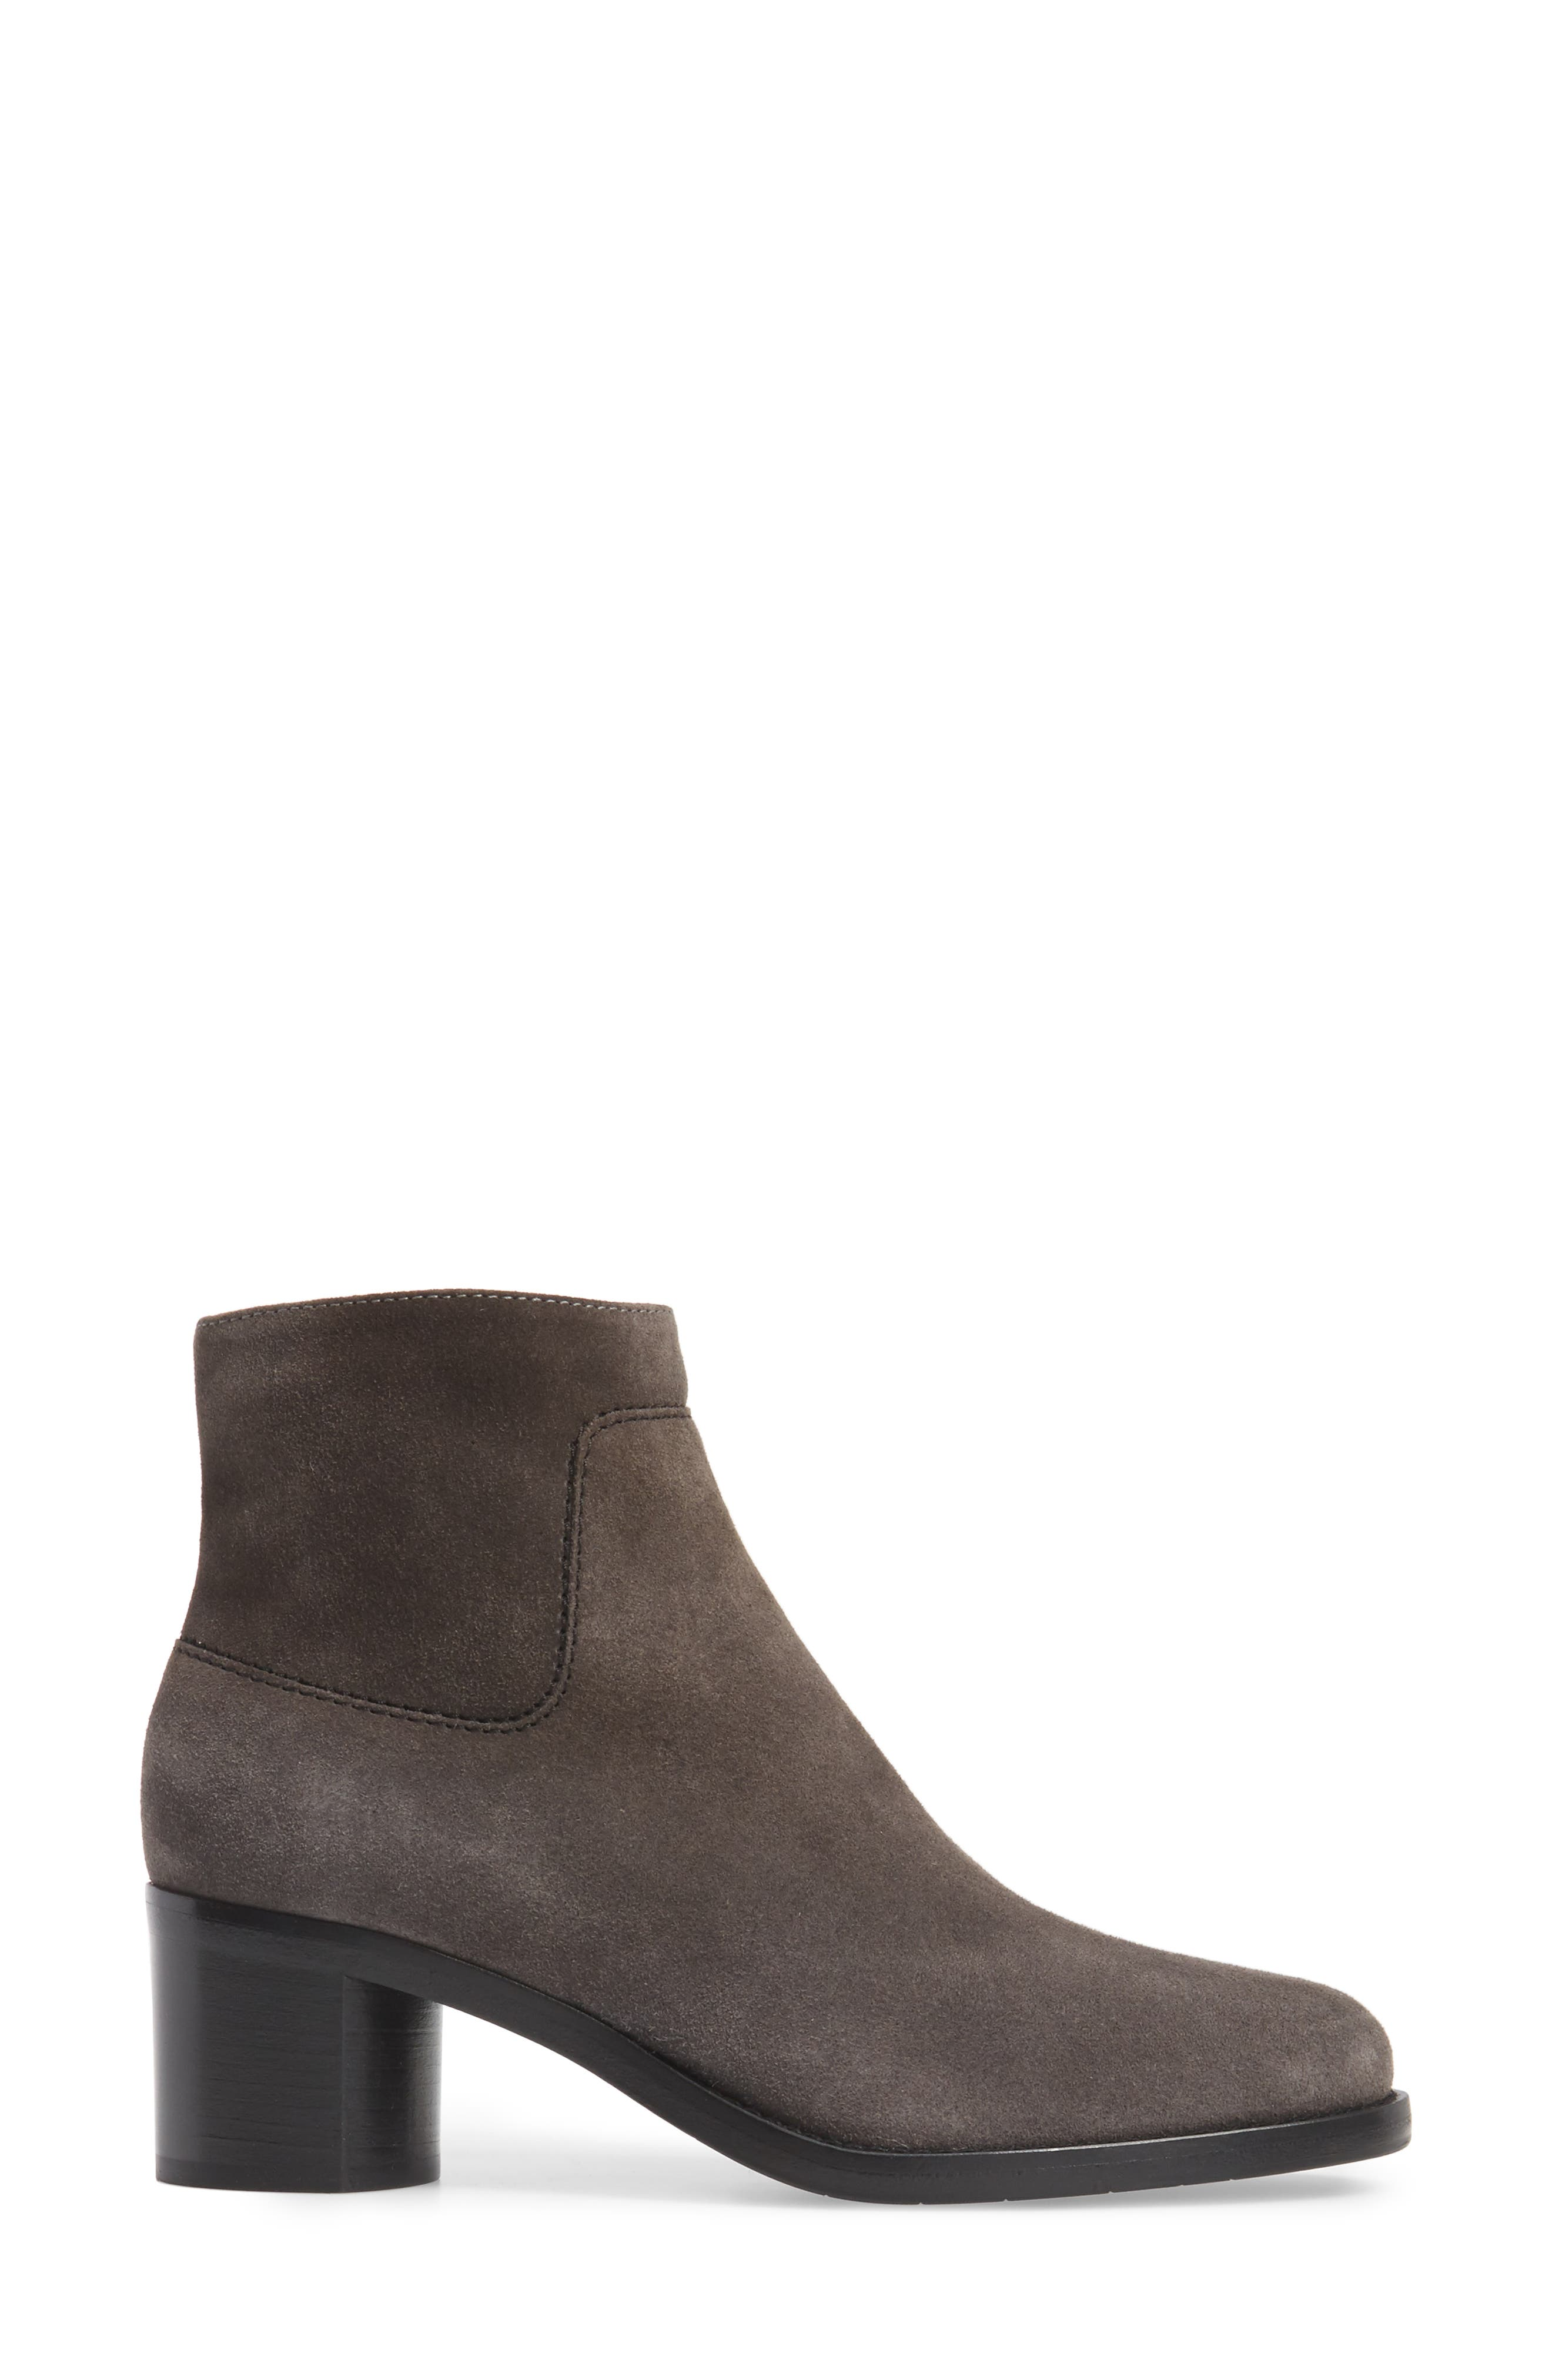 Alternate Image 3  - Aquatalia Tilda Weatherproof Bootie (Women)